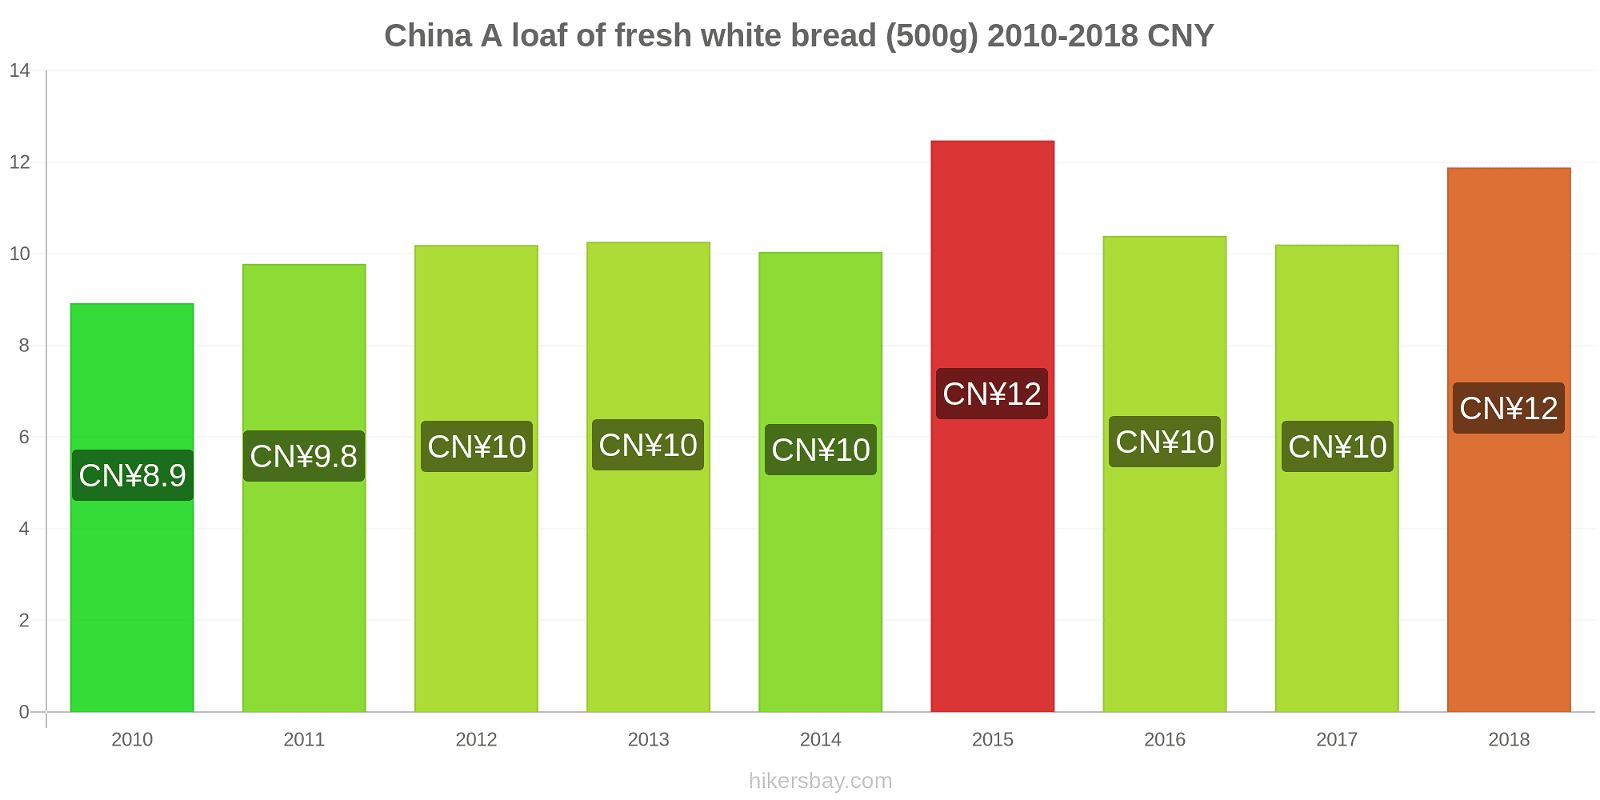 China price changes A loaf of fresh white bread (500g) hikersbay.com